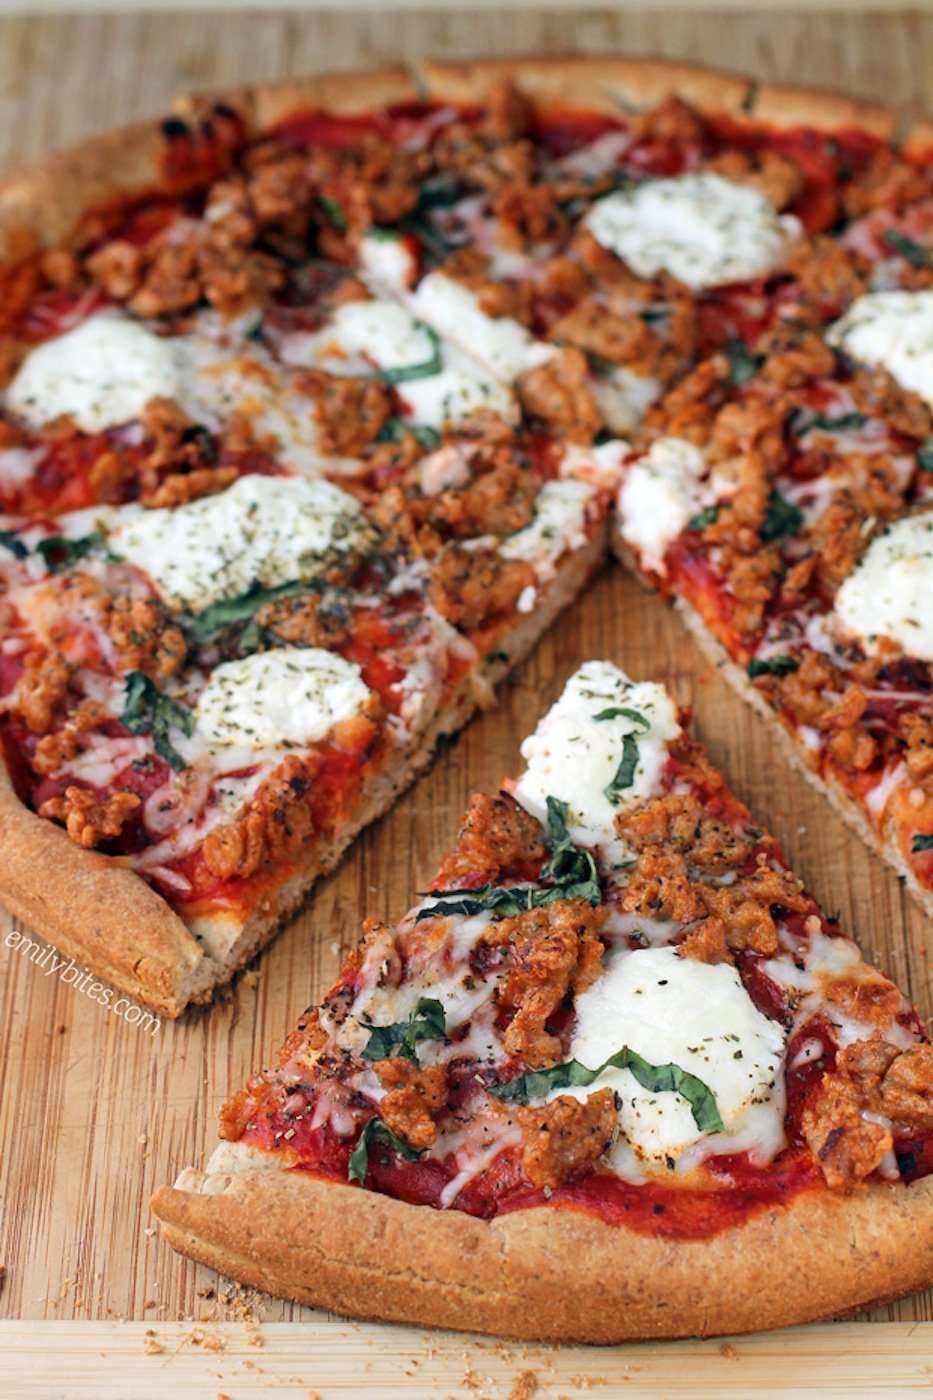 Sausage-and-Ricotta-Pizza